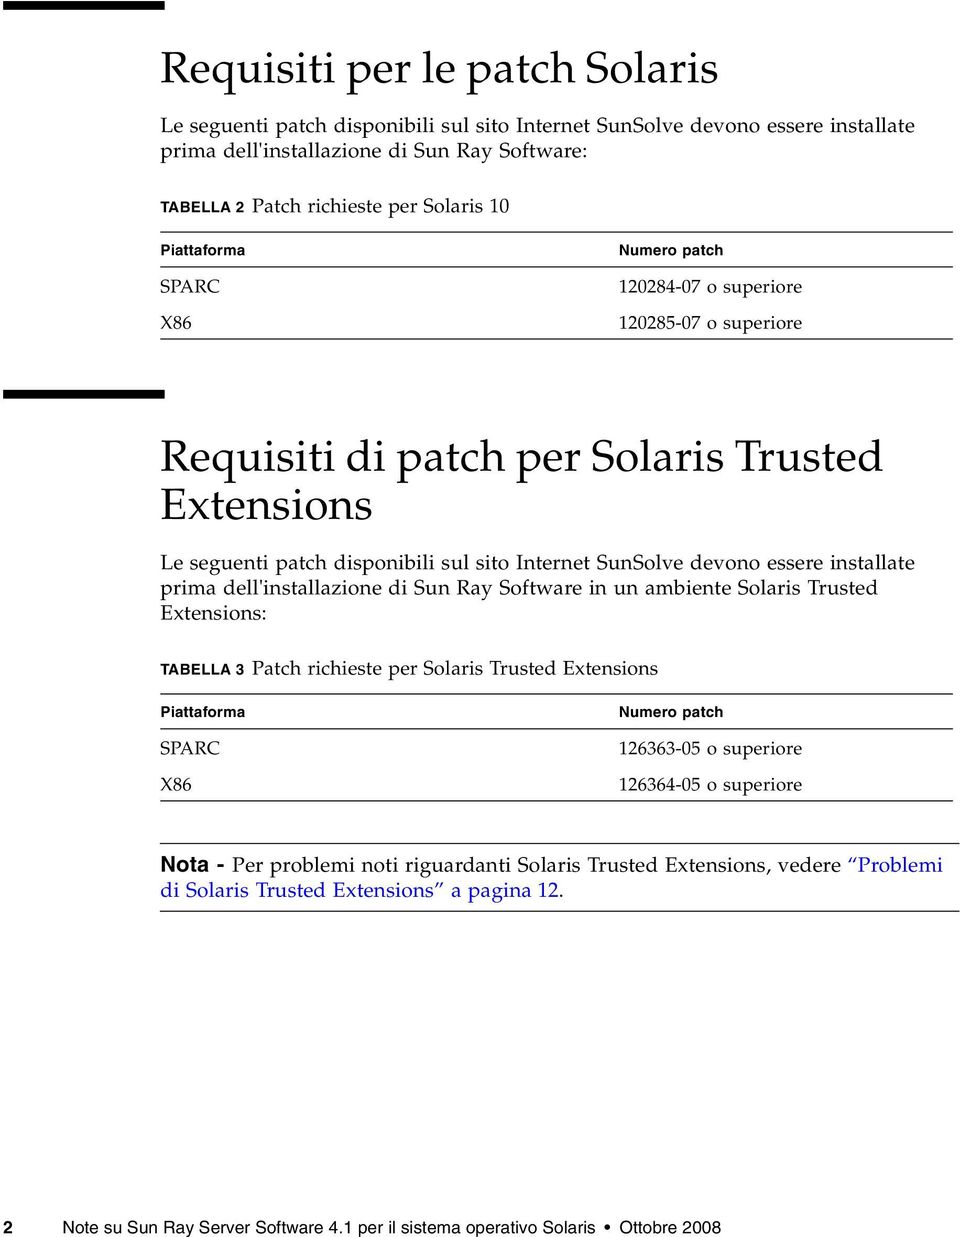 installate prima dell'installazione di Sun Ray Software in un ambiente Solaris Trusted Extensions: TABELLA 3 Patch richieste per Solaris Trusted Extensions Piattaforma SPARC X86 Numero patch